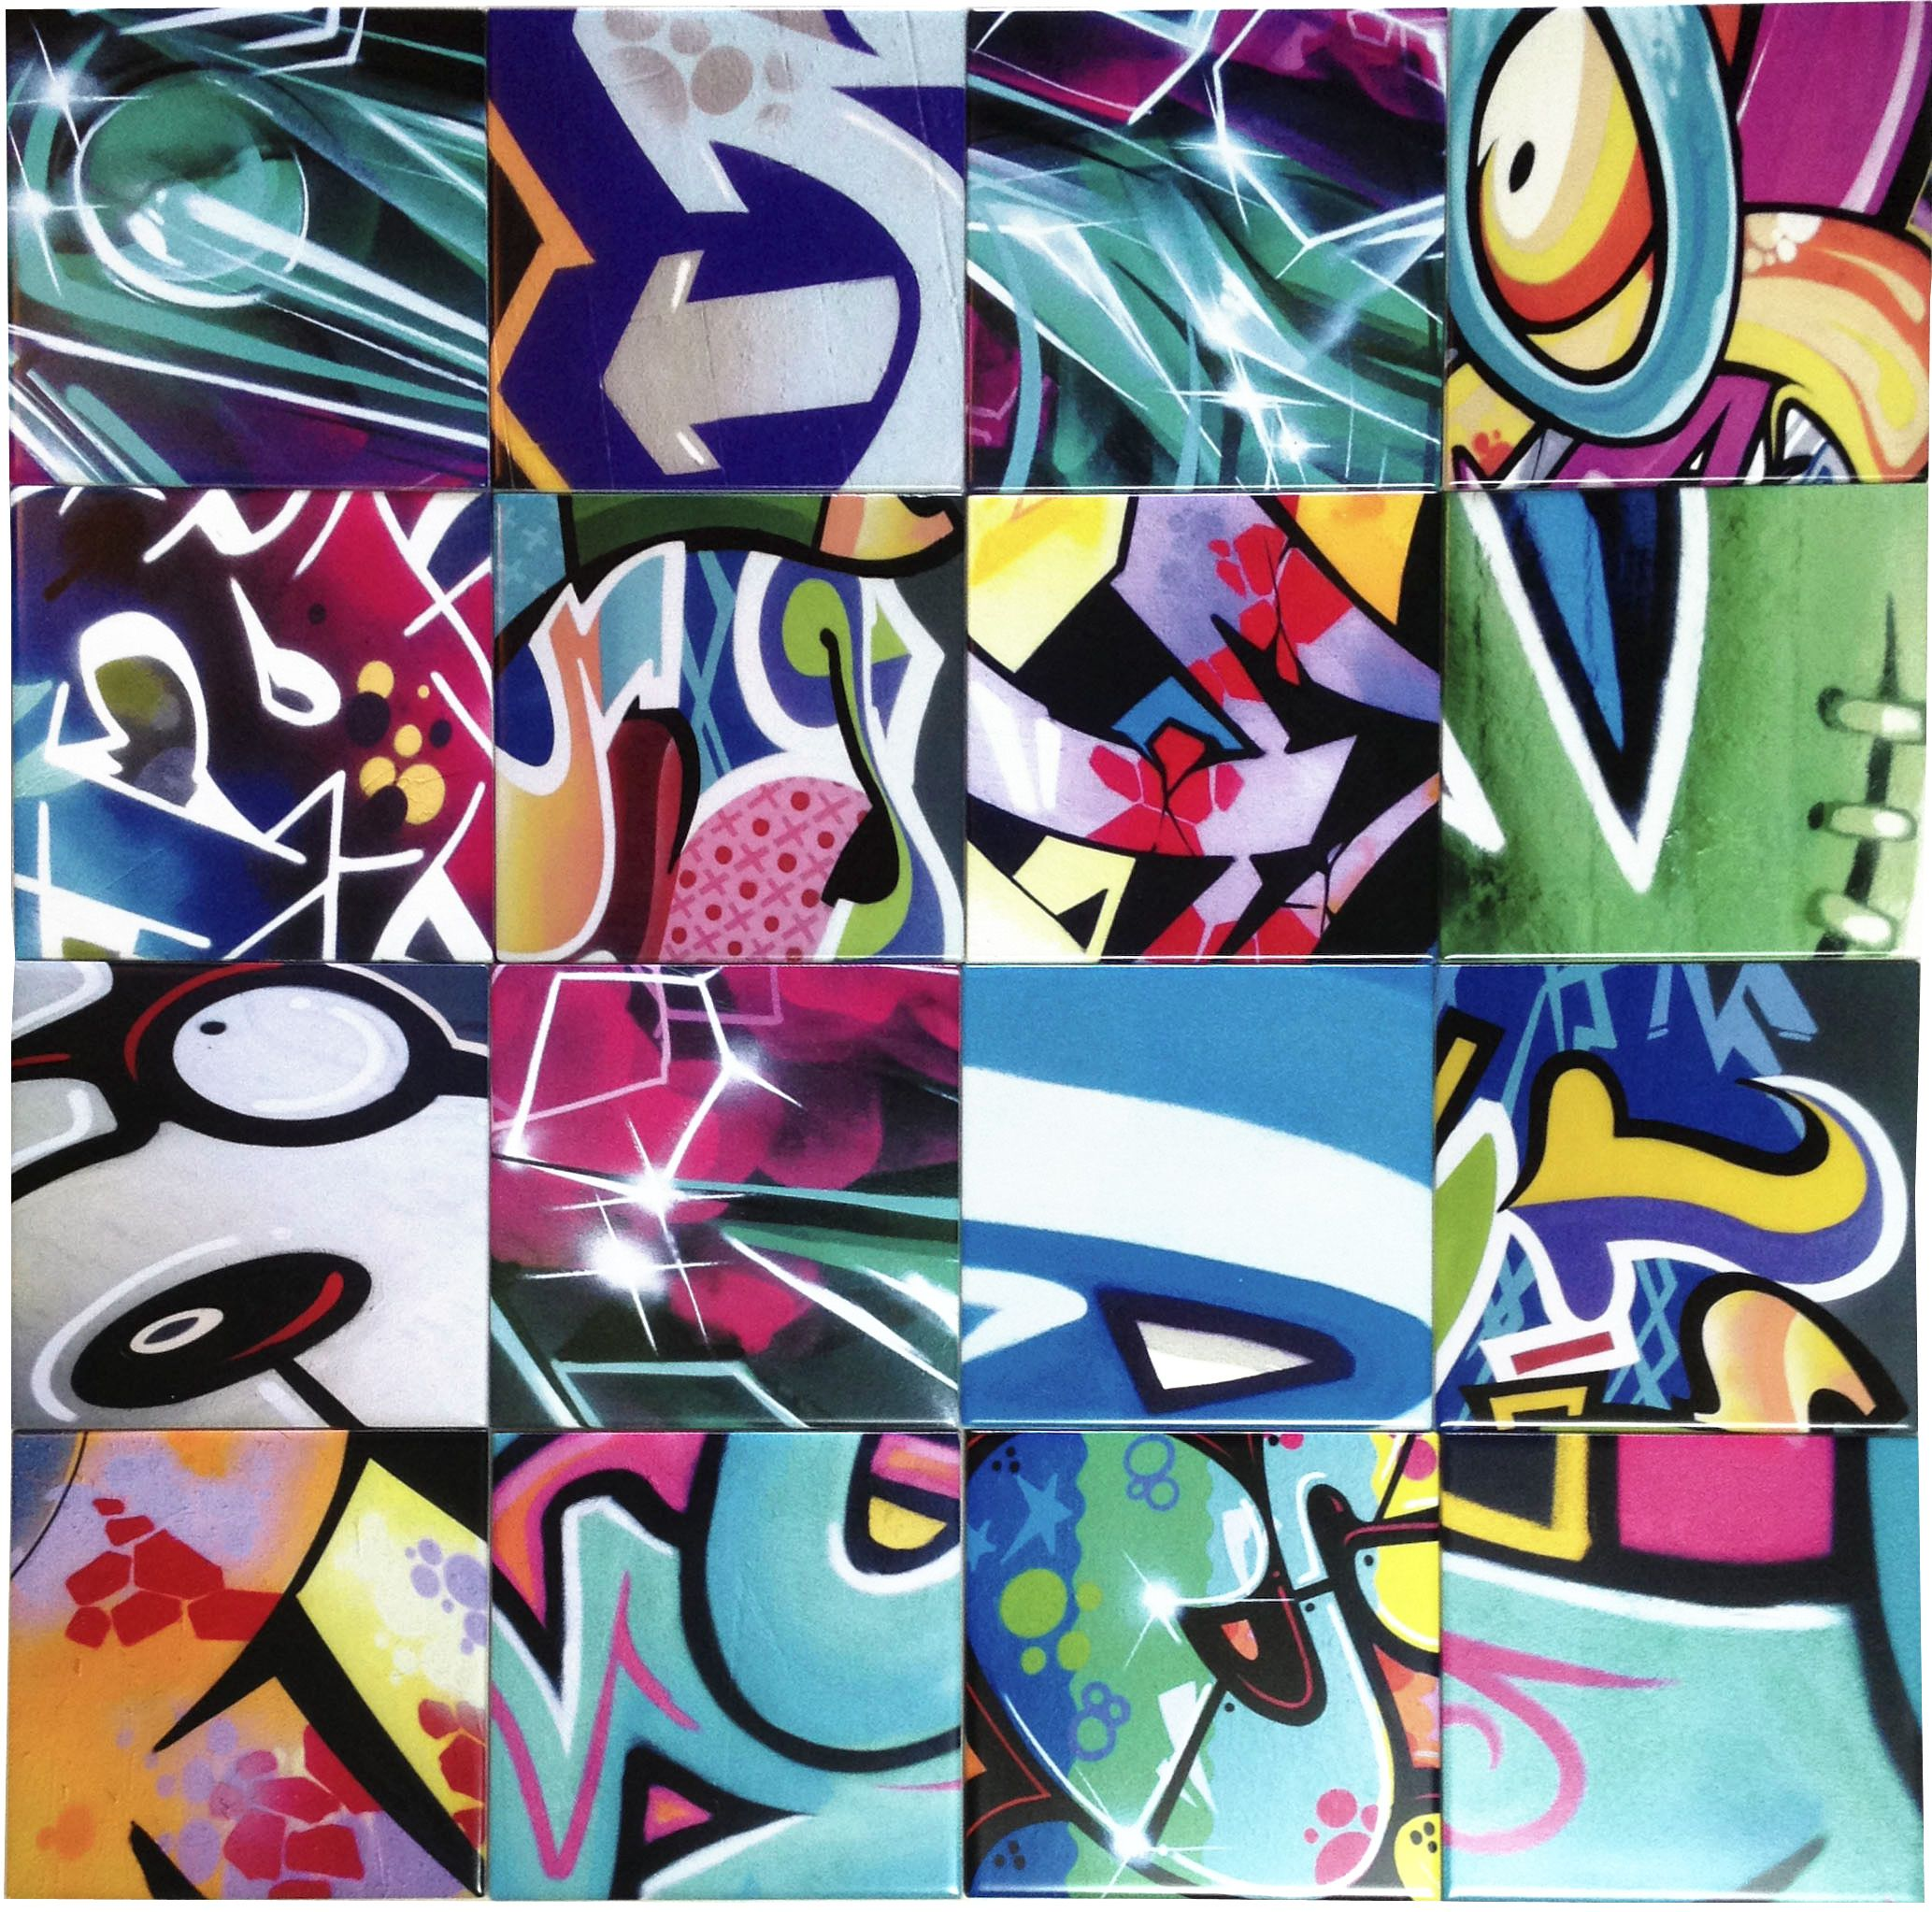 Graffiti wall tiles - Snippet Out Of Our Last Order Of Funky And Colourful Graffiti Tiles The Tiles Can